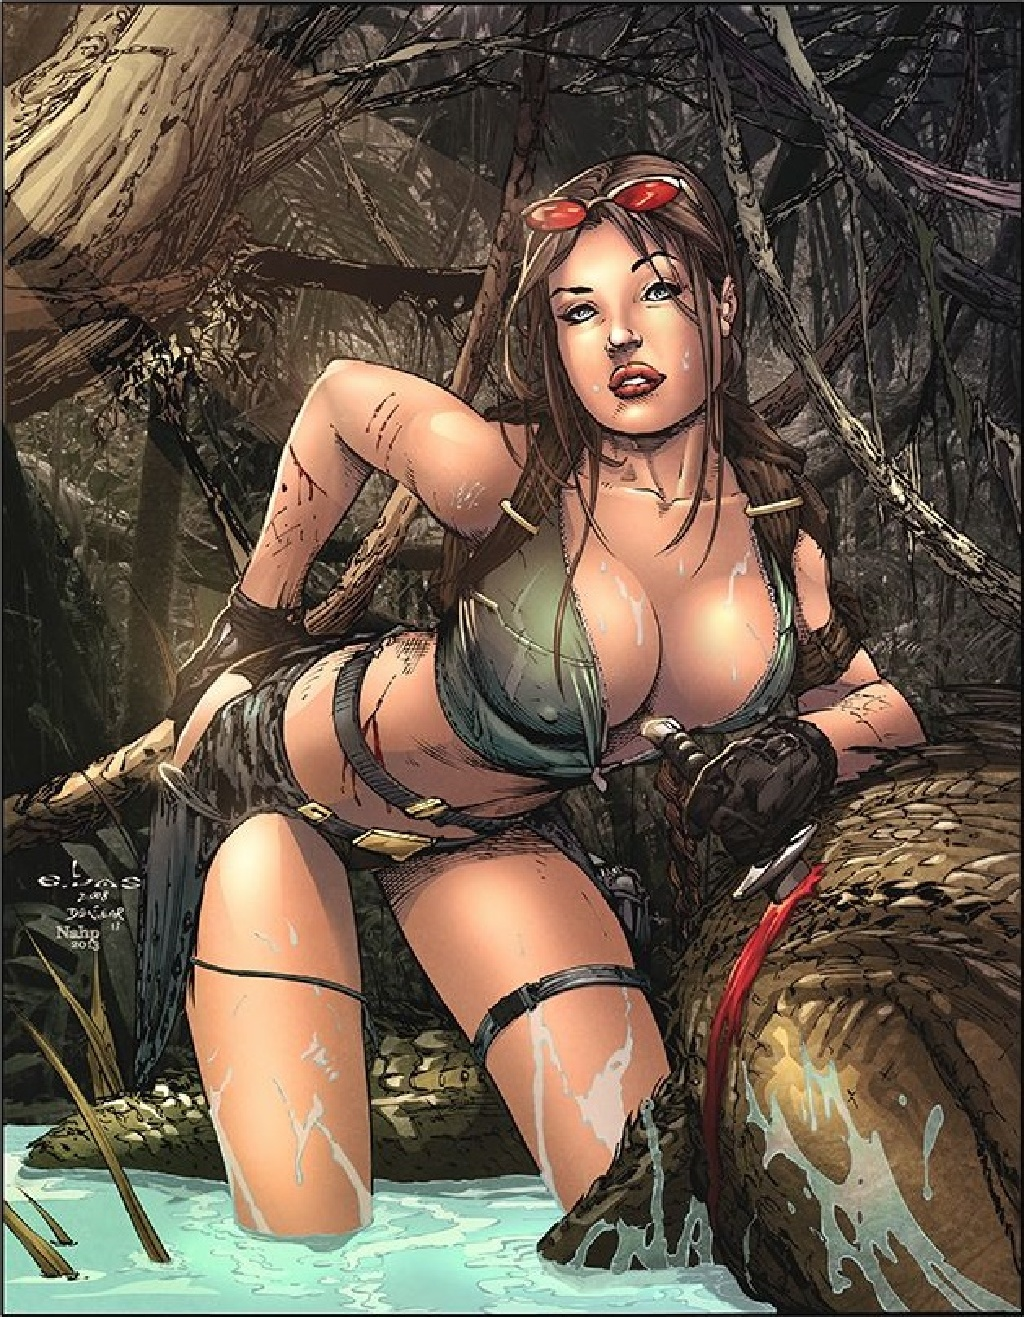 Tomb raider sexy cartoons hentai animated hoes